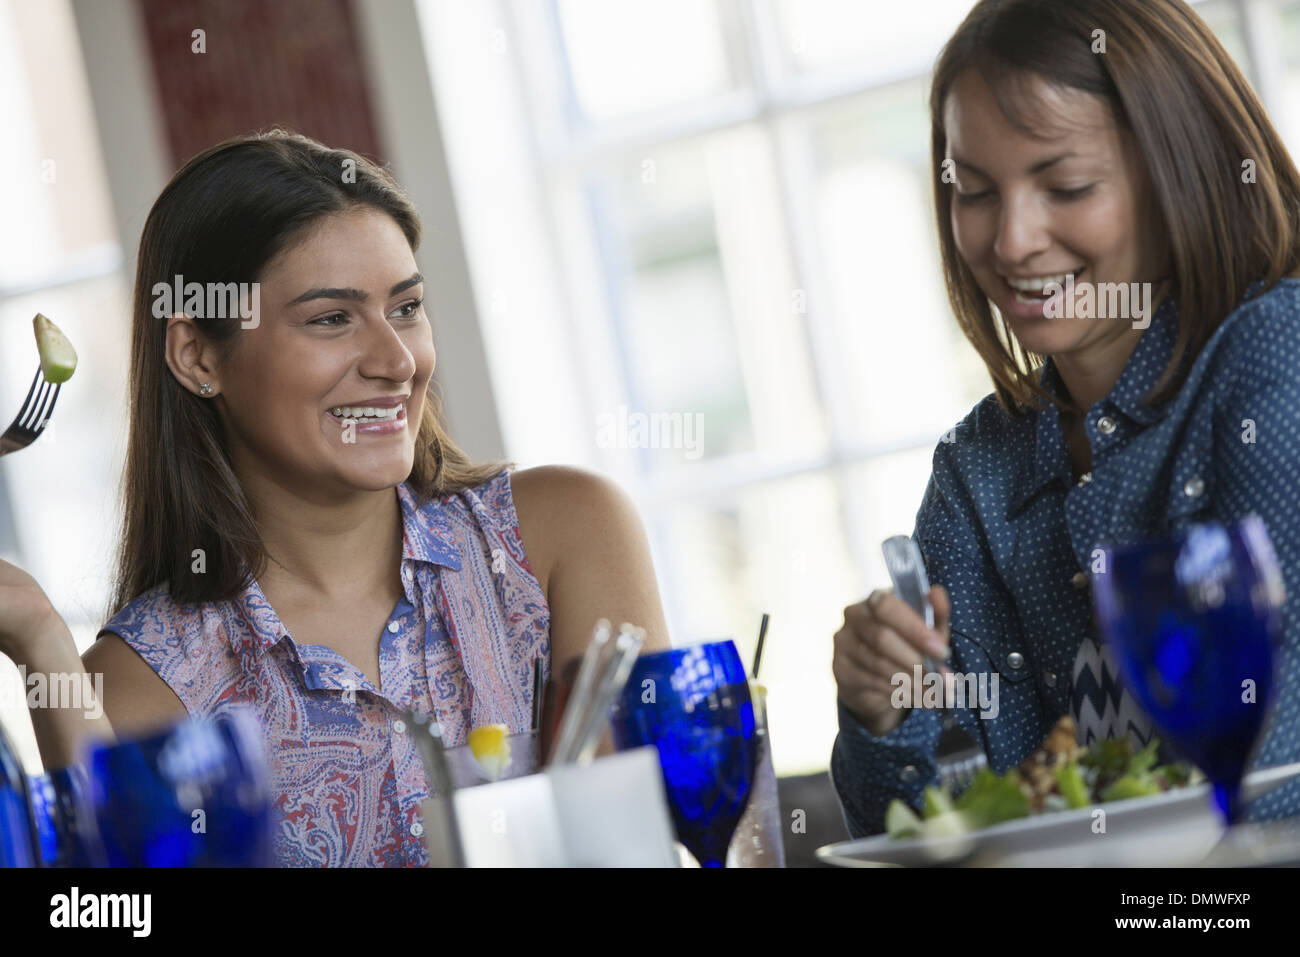 Two women seated at a cafe table having a meal. - Stock Image